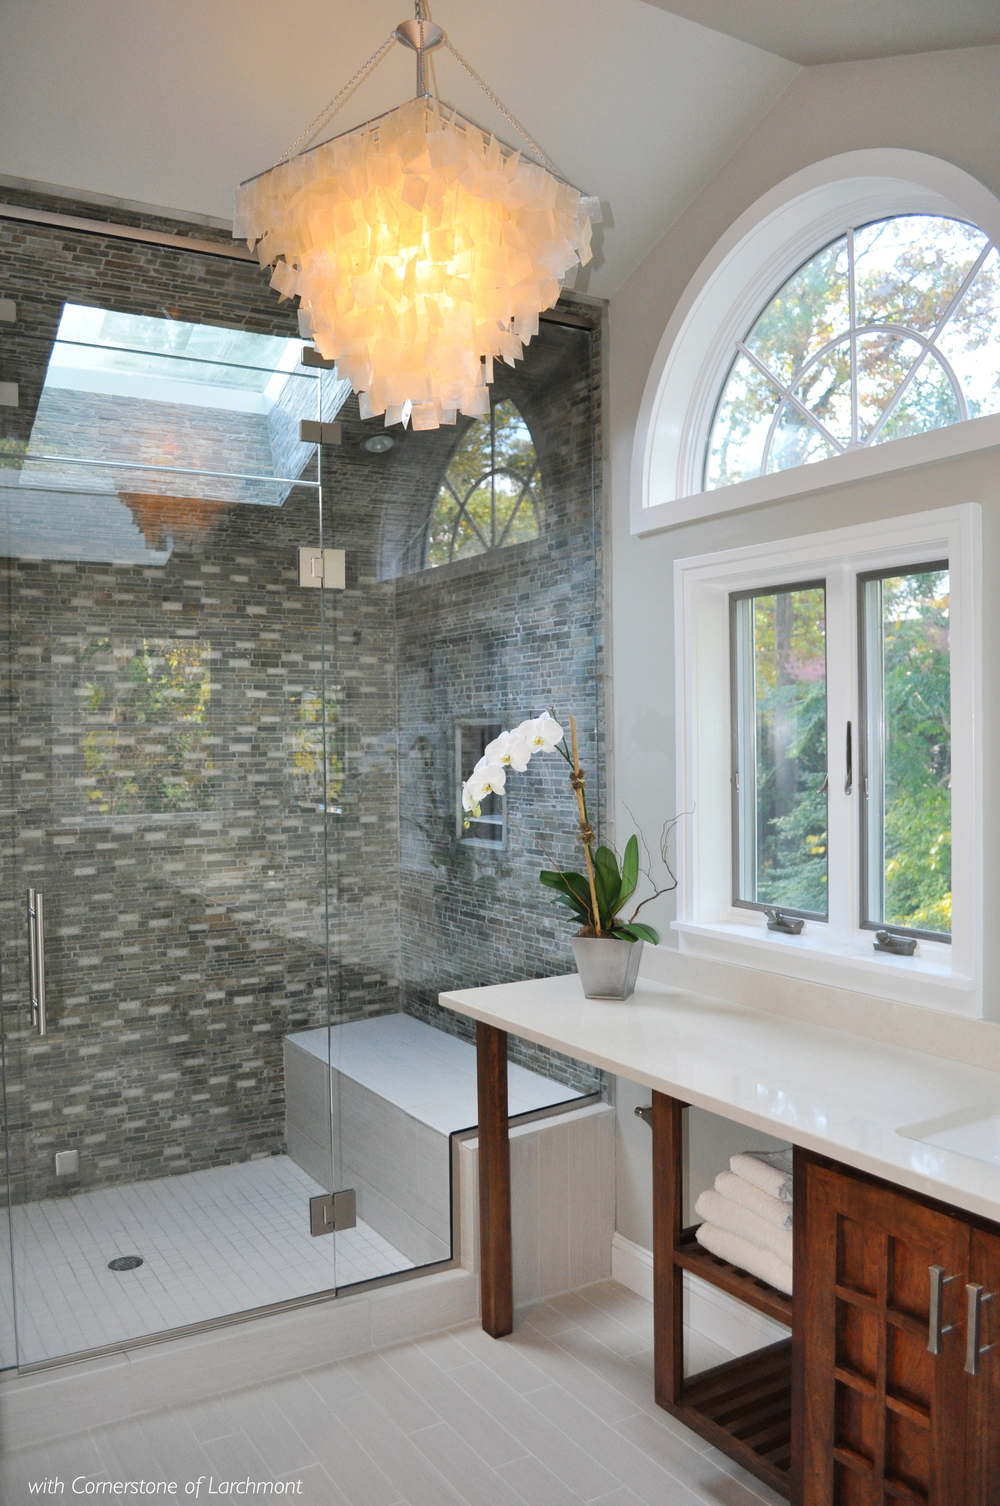 "ASIAN INSPIRED MASTER BATH RETREAT, Larchmont, NY: The master bath remodel is inspired by the homeowner's years in Asia. The luxurious space provides a spa-like retreat that connects with the outdoors. The renovation plan revamps the cramped and dysfunctional space creating separate and usable spaces. The total remodel adds two skylights and arranges new windows to maximize space and infuse the room with light. Porcelain ""metallized"" floor tile installed like wood planks and capiz shell chandelier introduce a sophisticated, contemporary twist to the Asian motif. A custom designed double-sink wood vanity allows for a make-up area, while a celedon slate and white glass tiled steam shower offers the ultimate in relaxation."